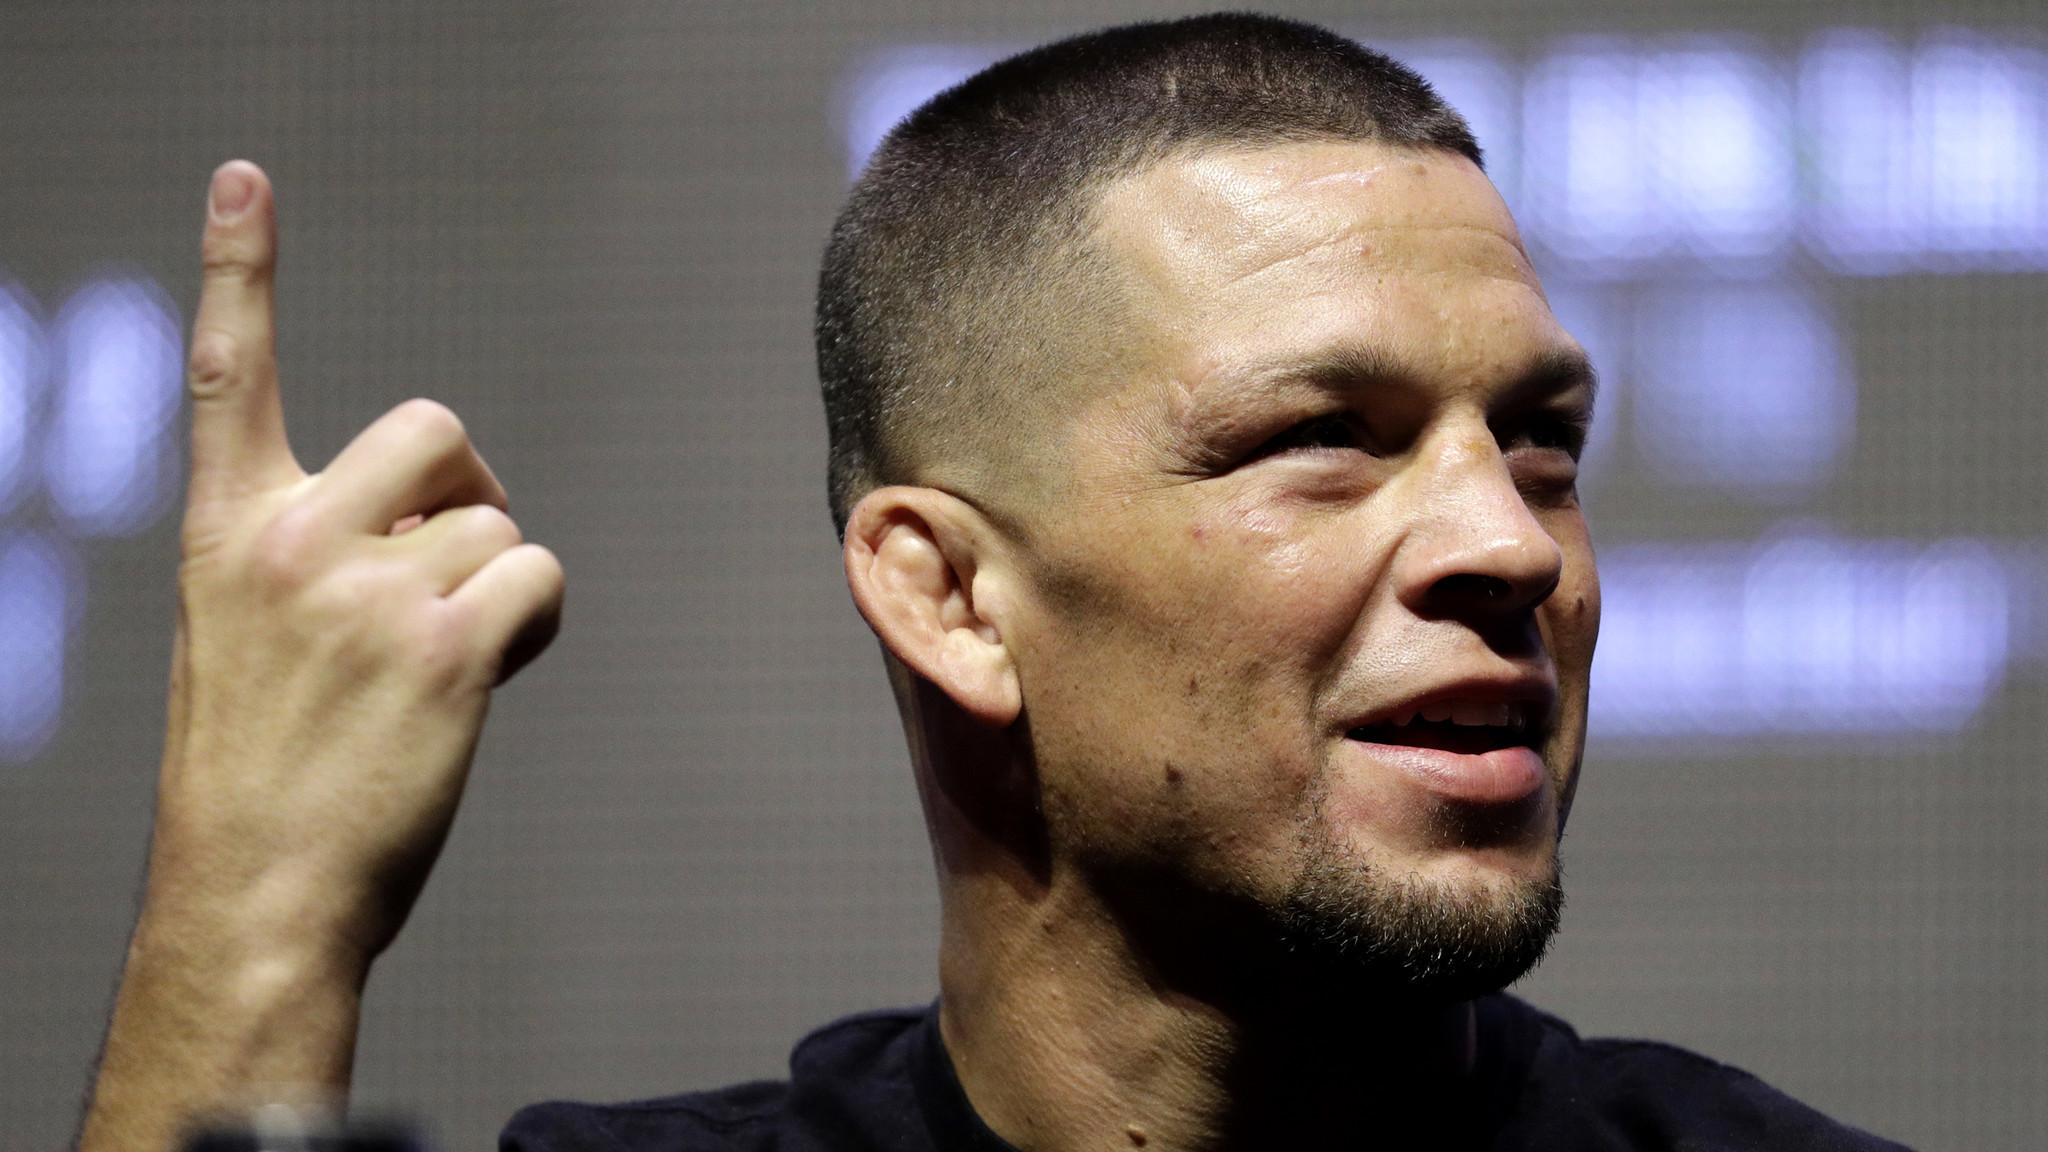 Nate Diaz HD Wallpaper